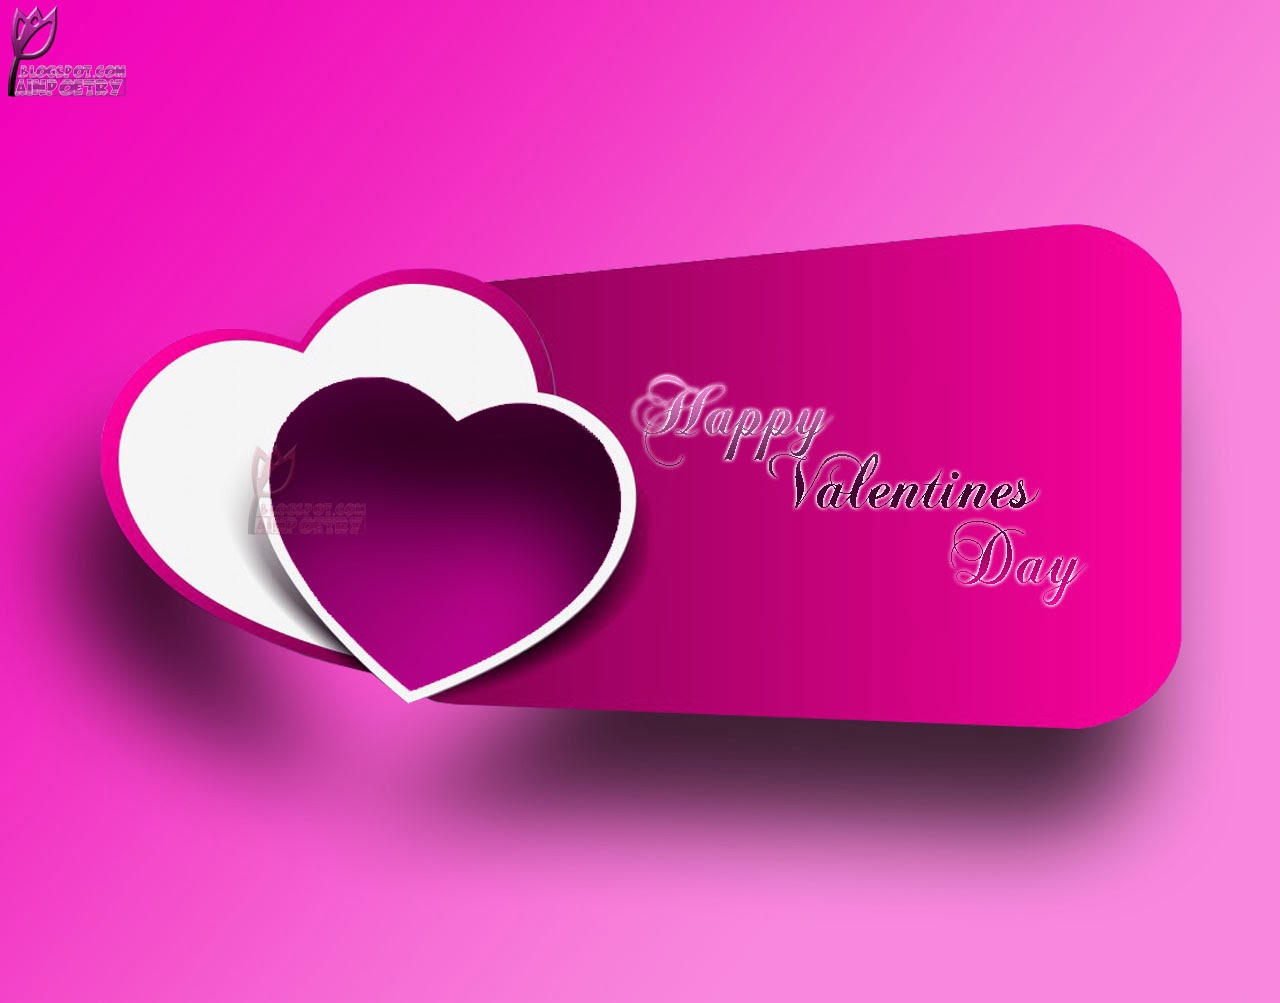 Happy-Valentines-Day-Wishes-Image-HD-Wide